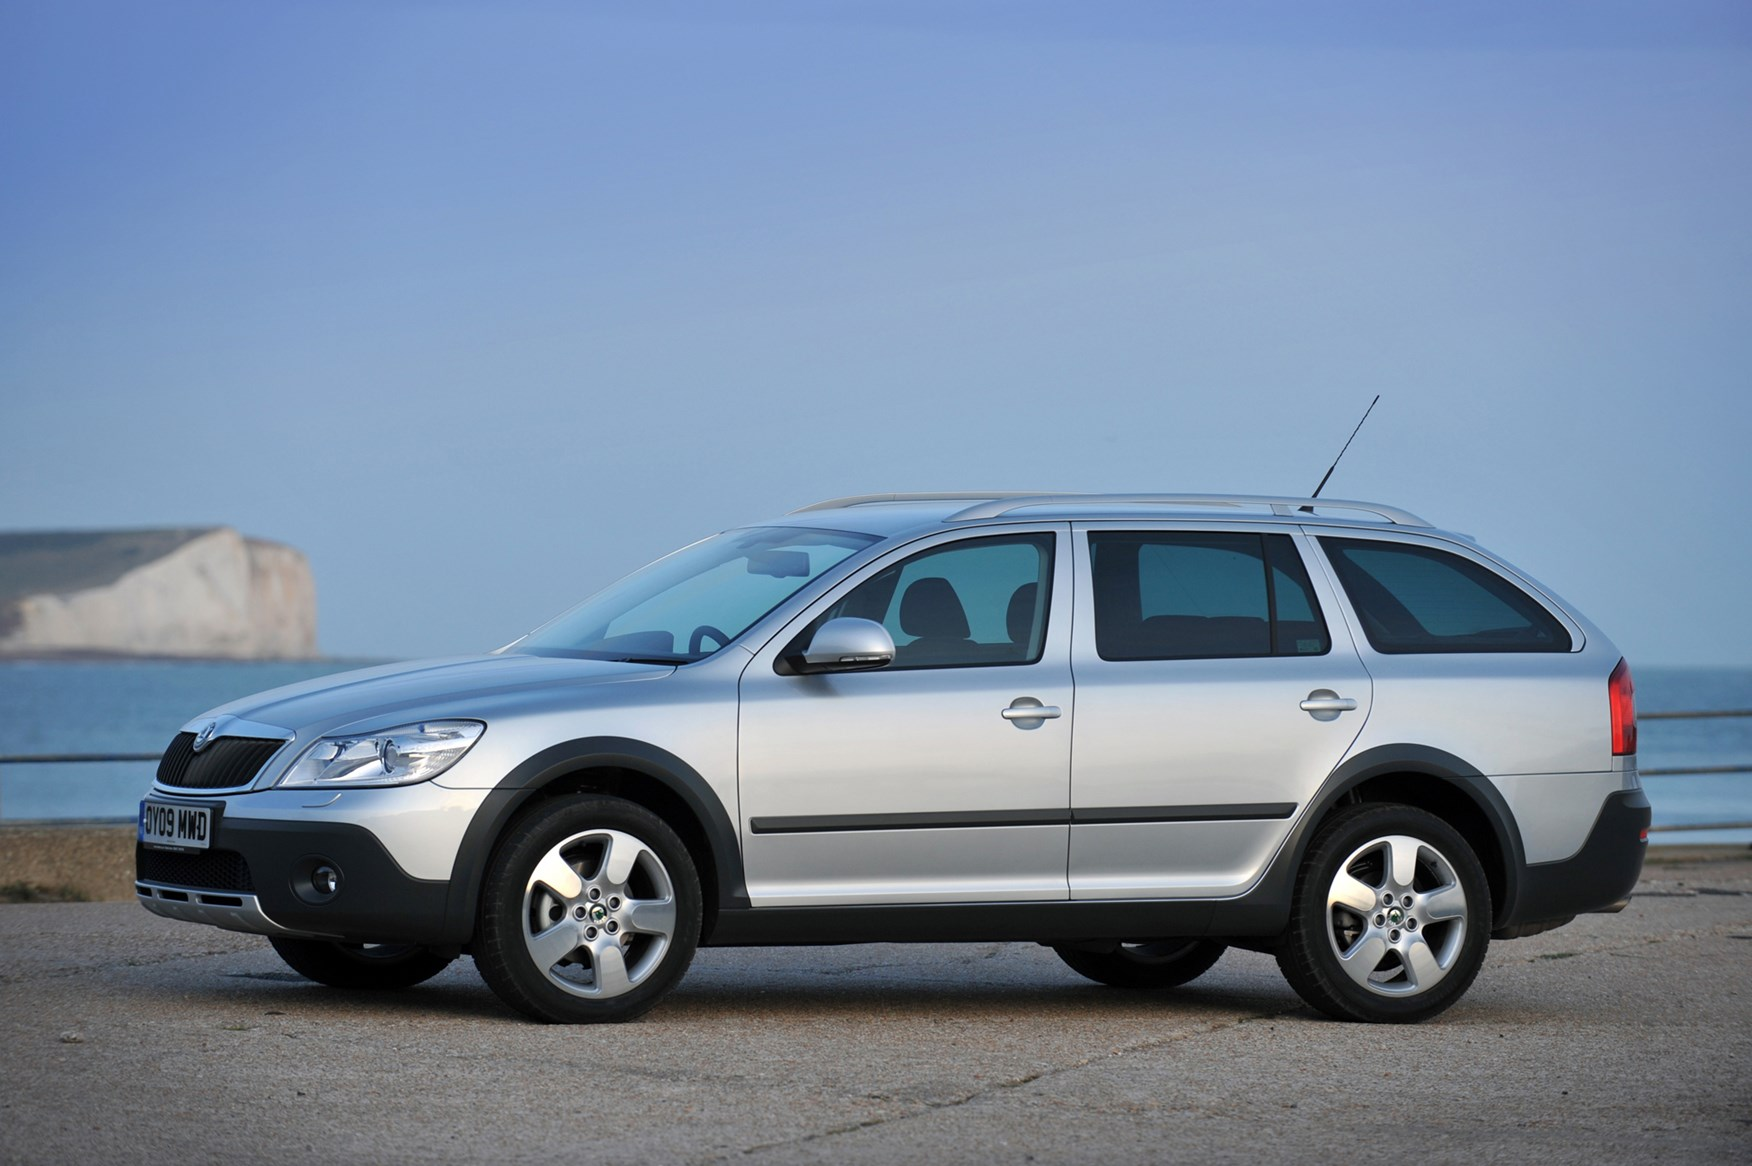 skoda octavia scout 2007 2012 photos parkers. Black Bedroom Furniture Sets. Home Design Ideas